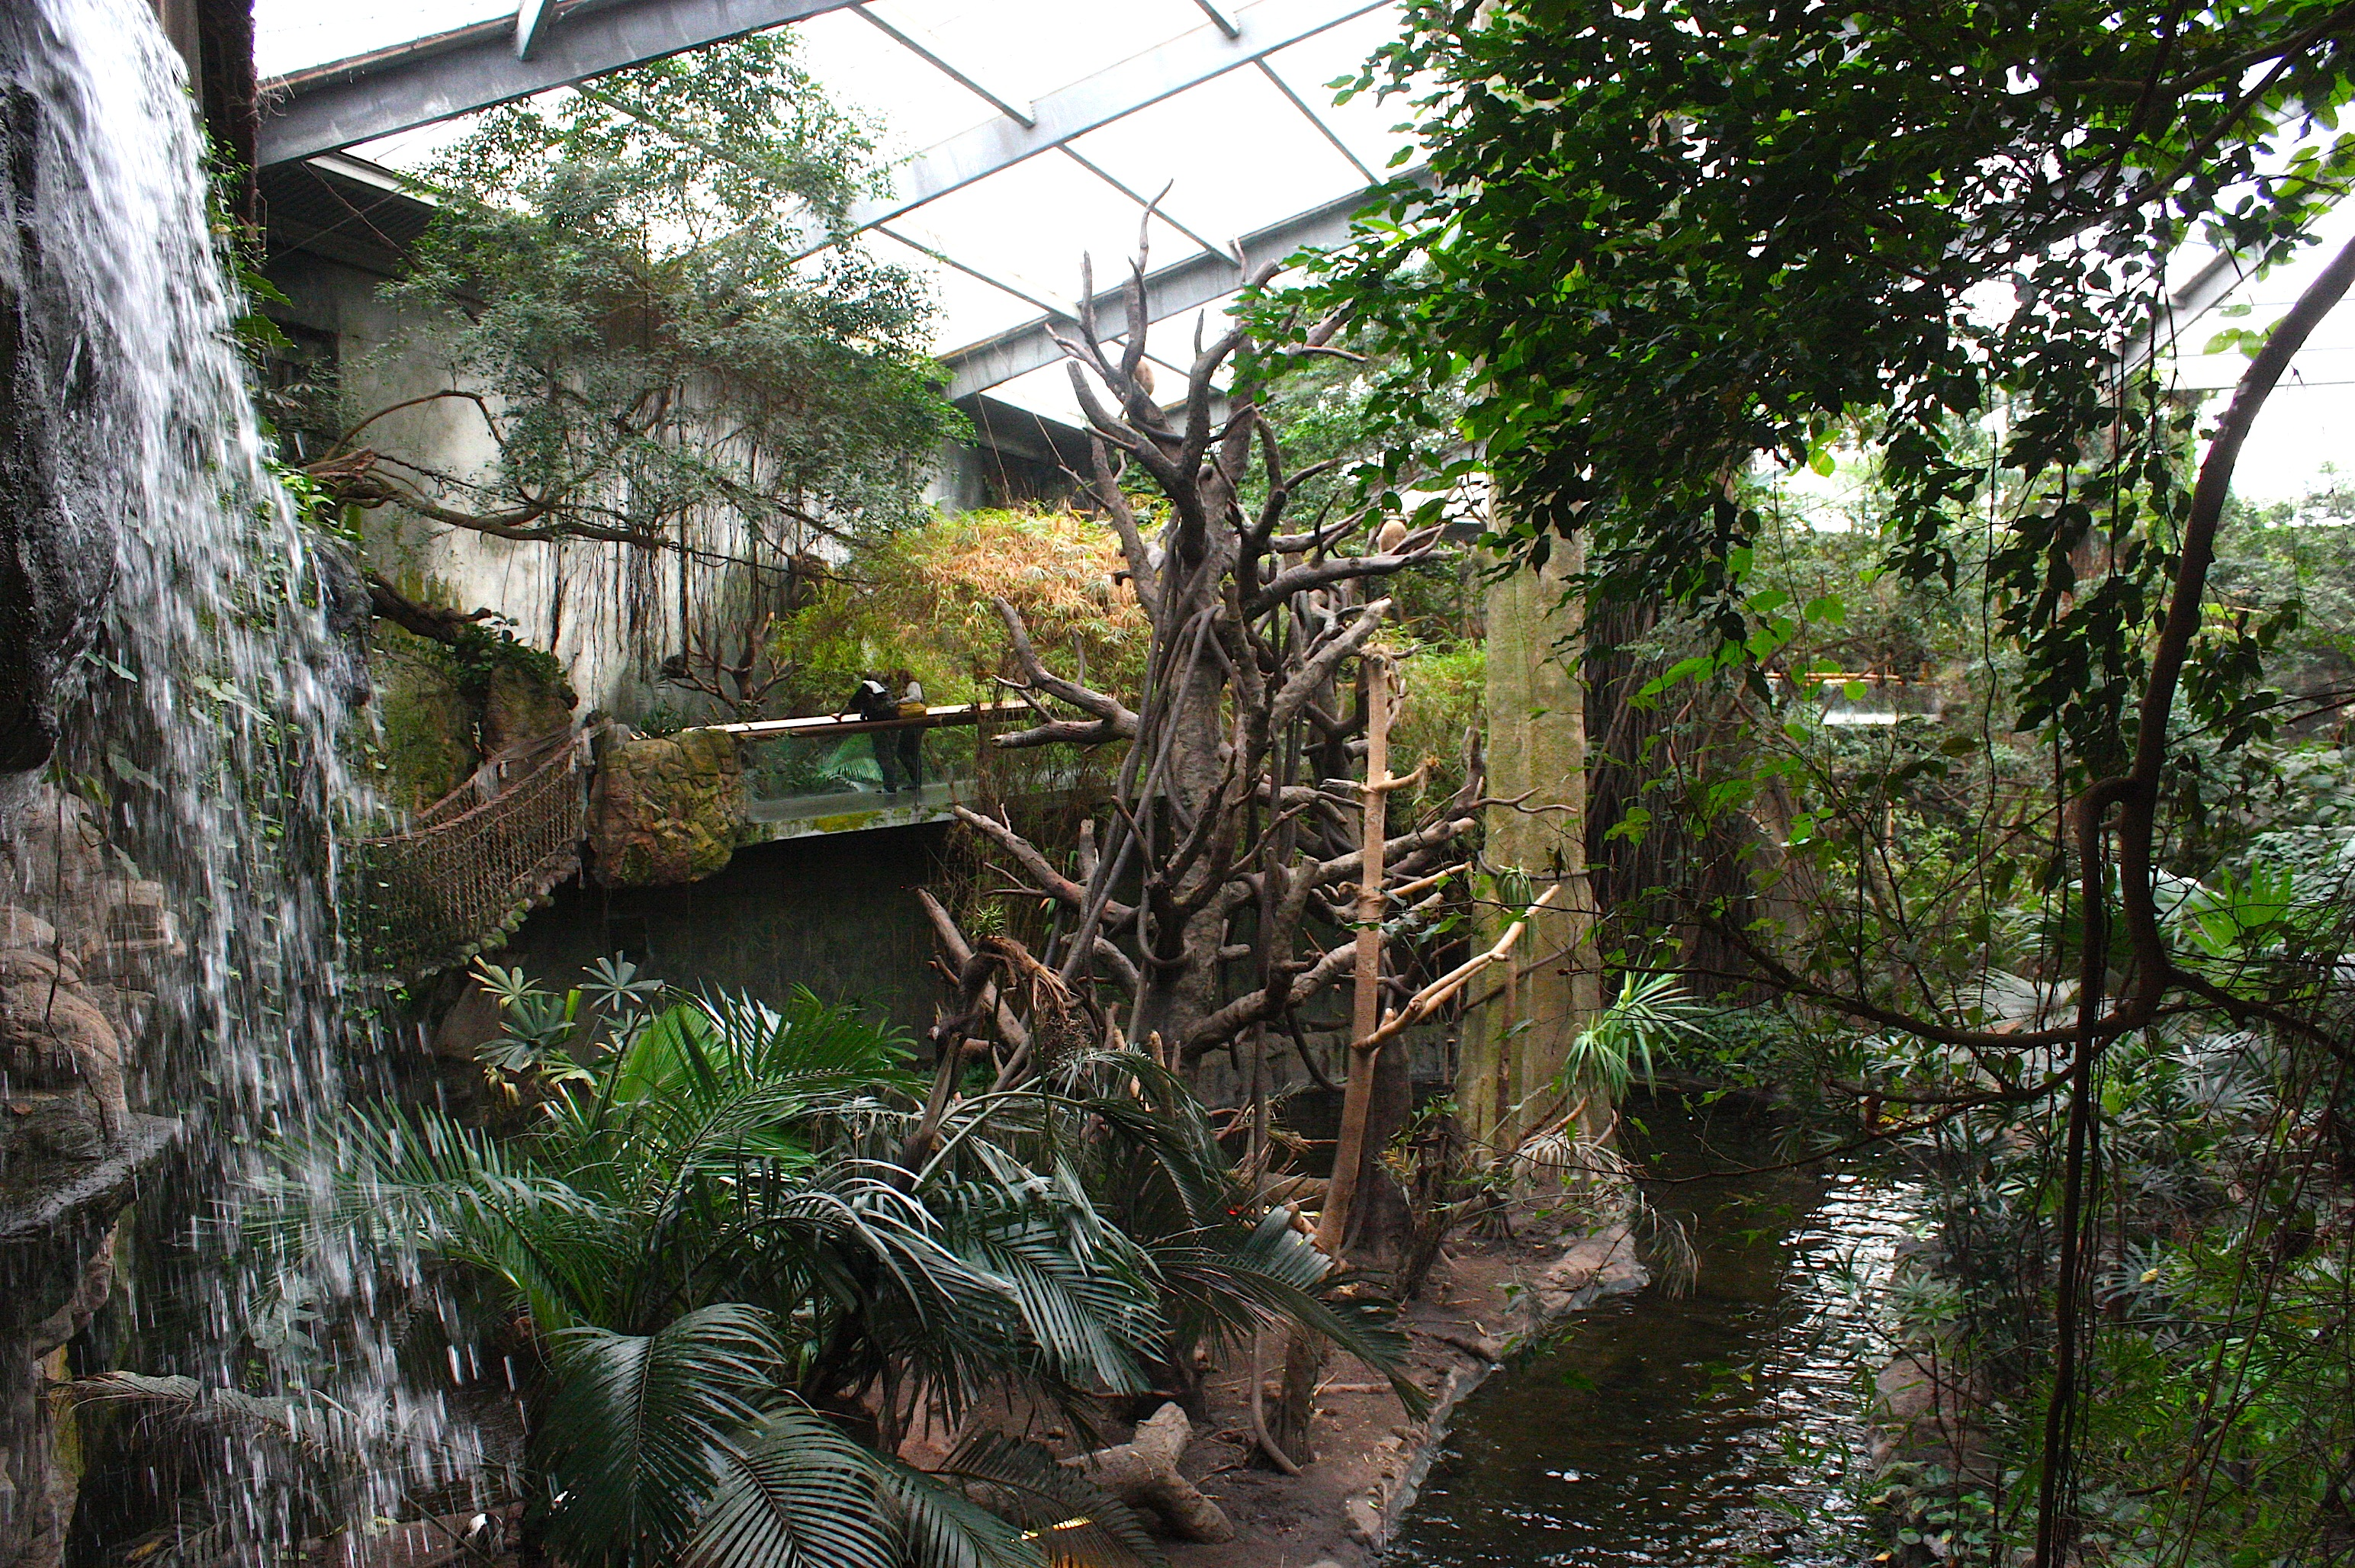 ideas for wedding pictures in the rain - Omaha's Henry Doorly Zoo — in January